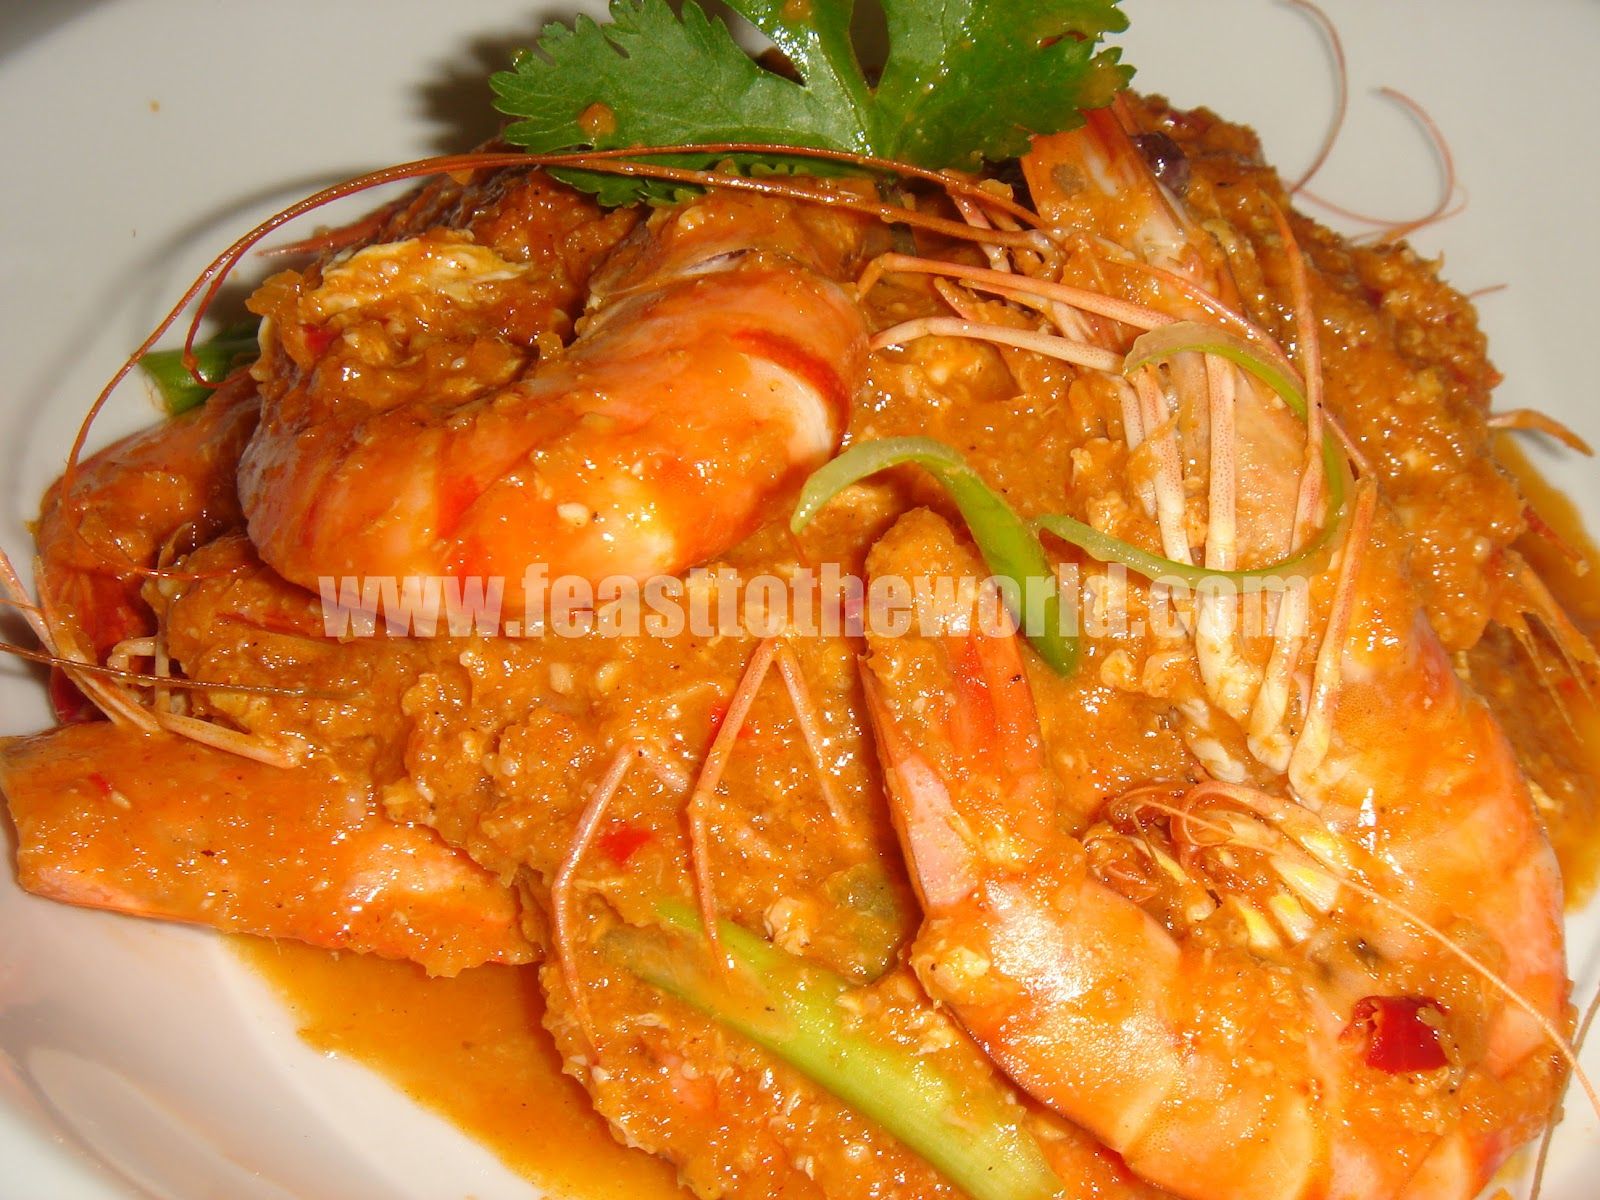 FEAST to the world: A Crab In Disguise - Singapore Chilli Prawns